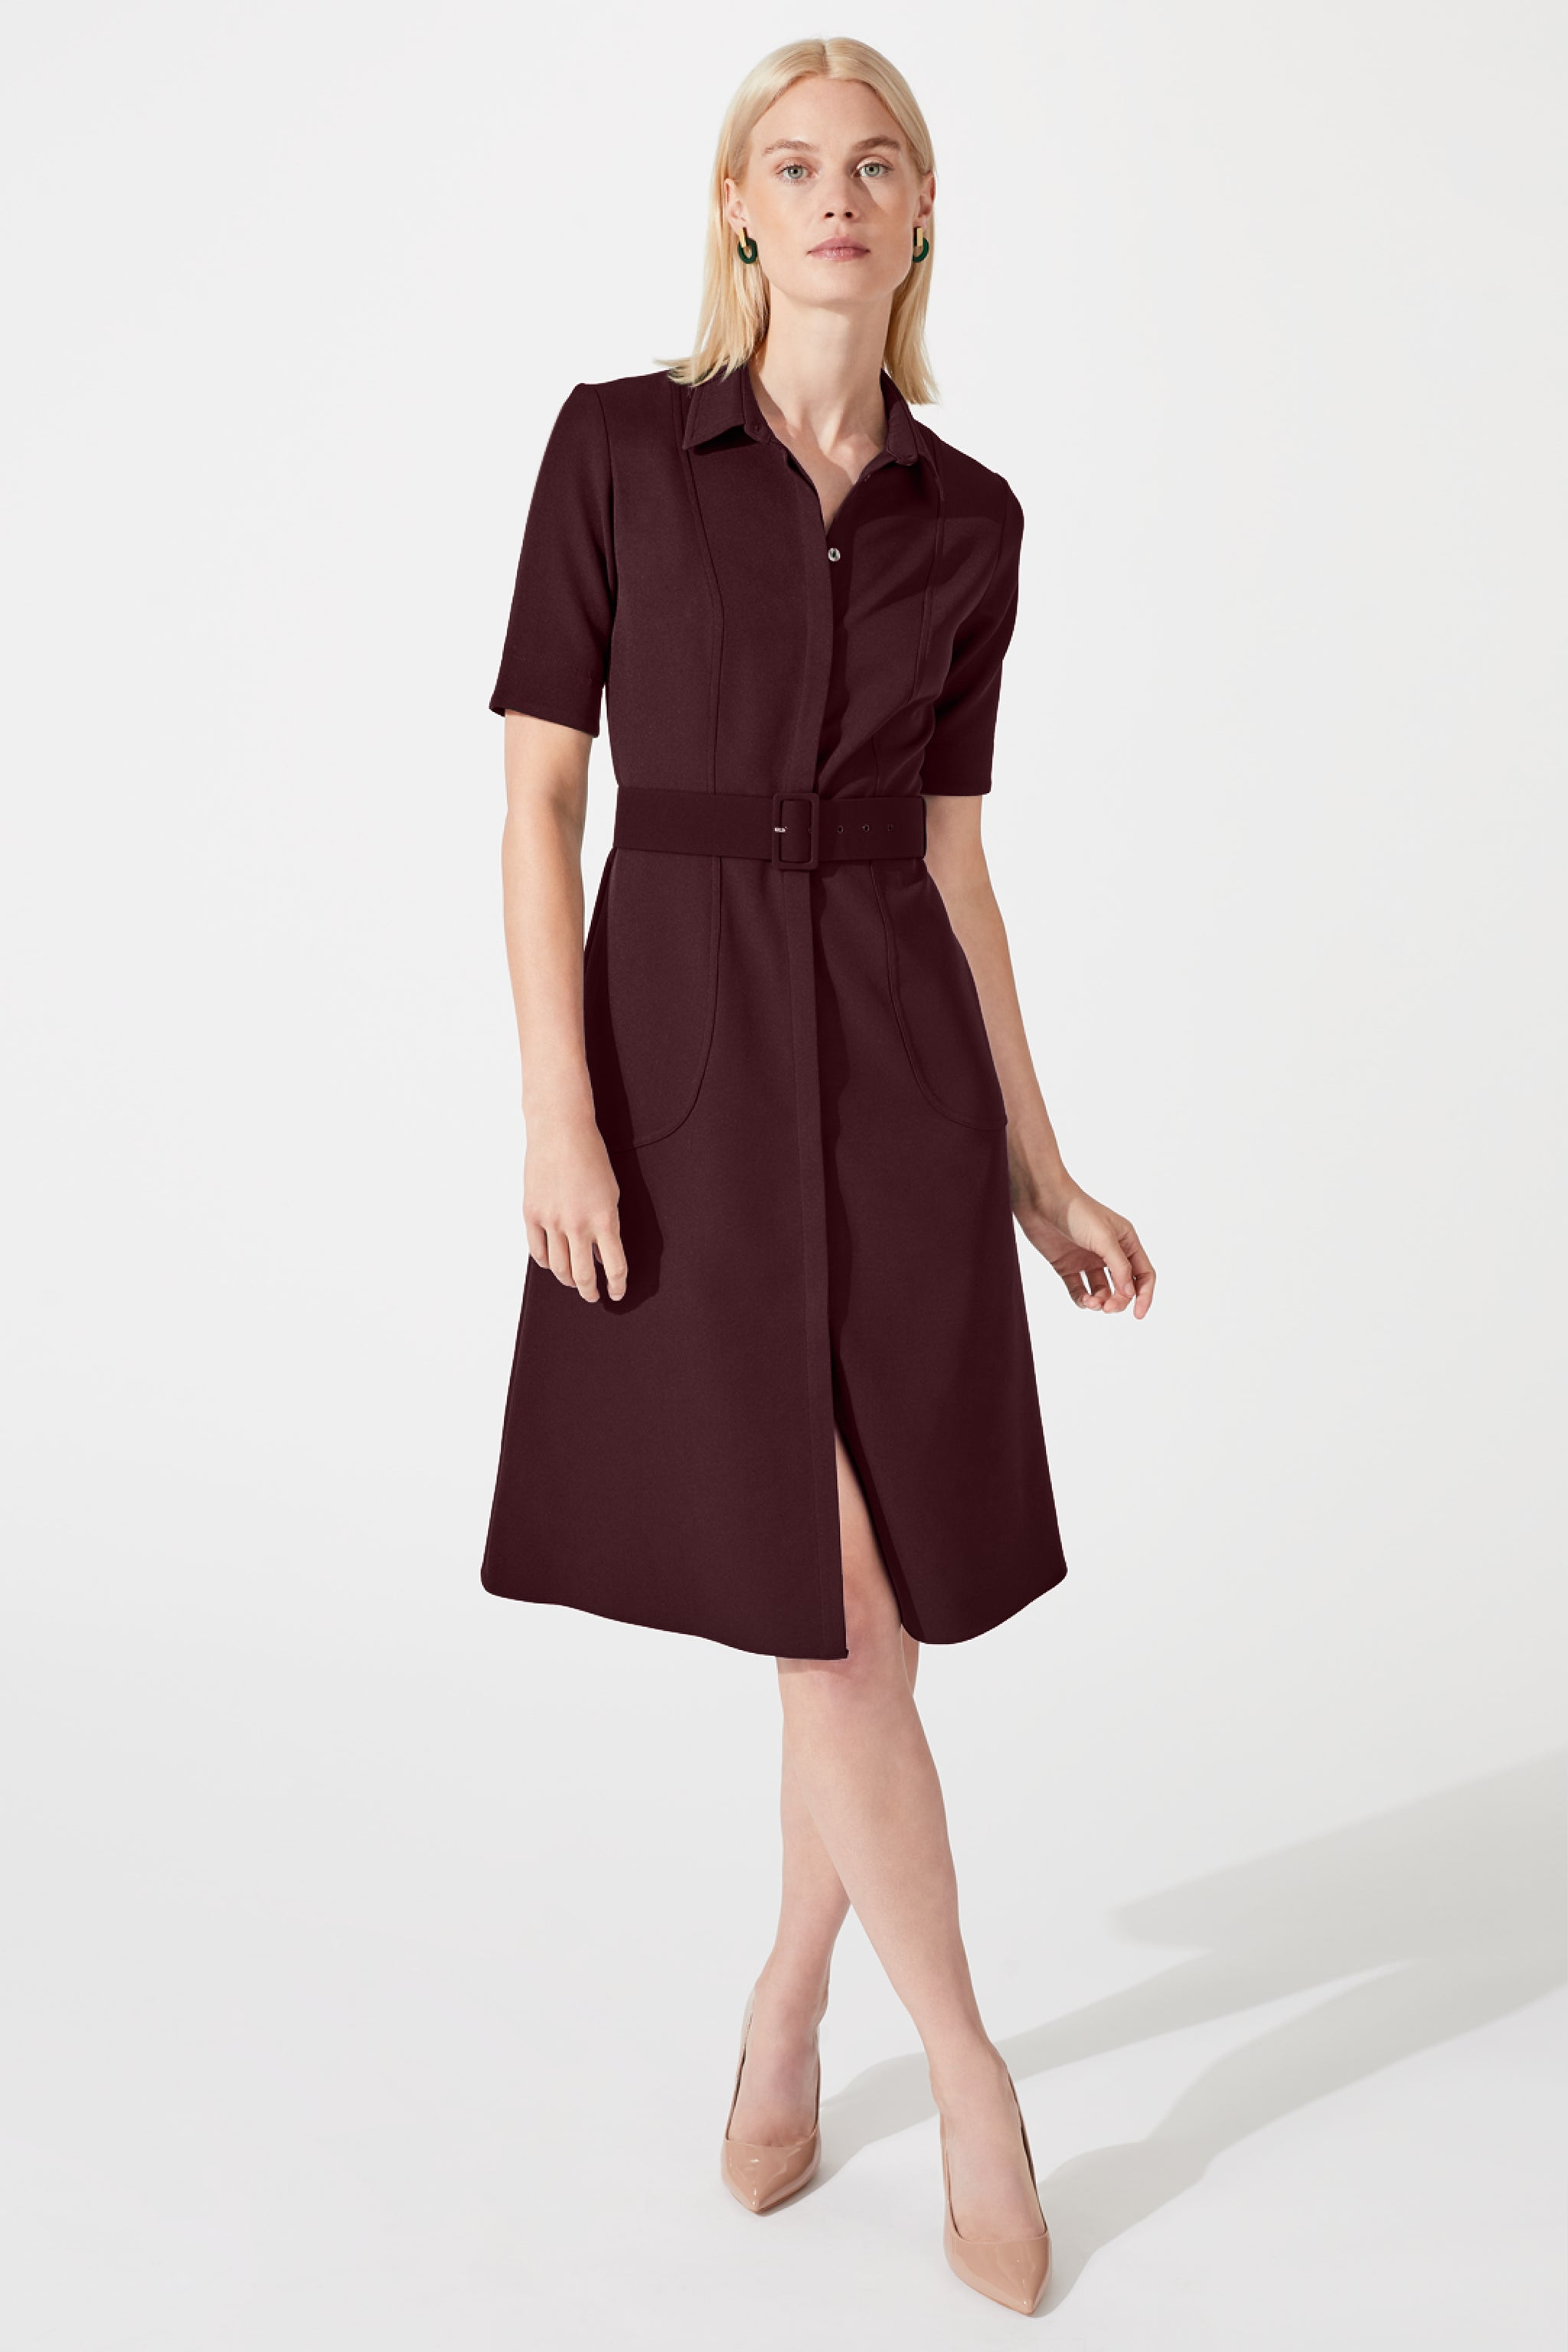 Belvedere Damson Shirt Dress